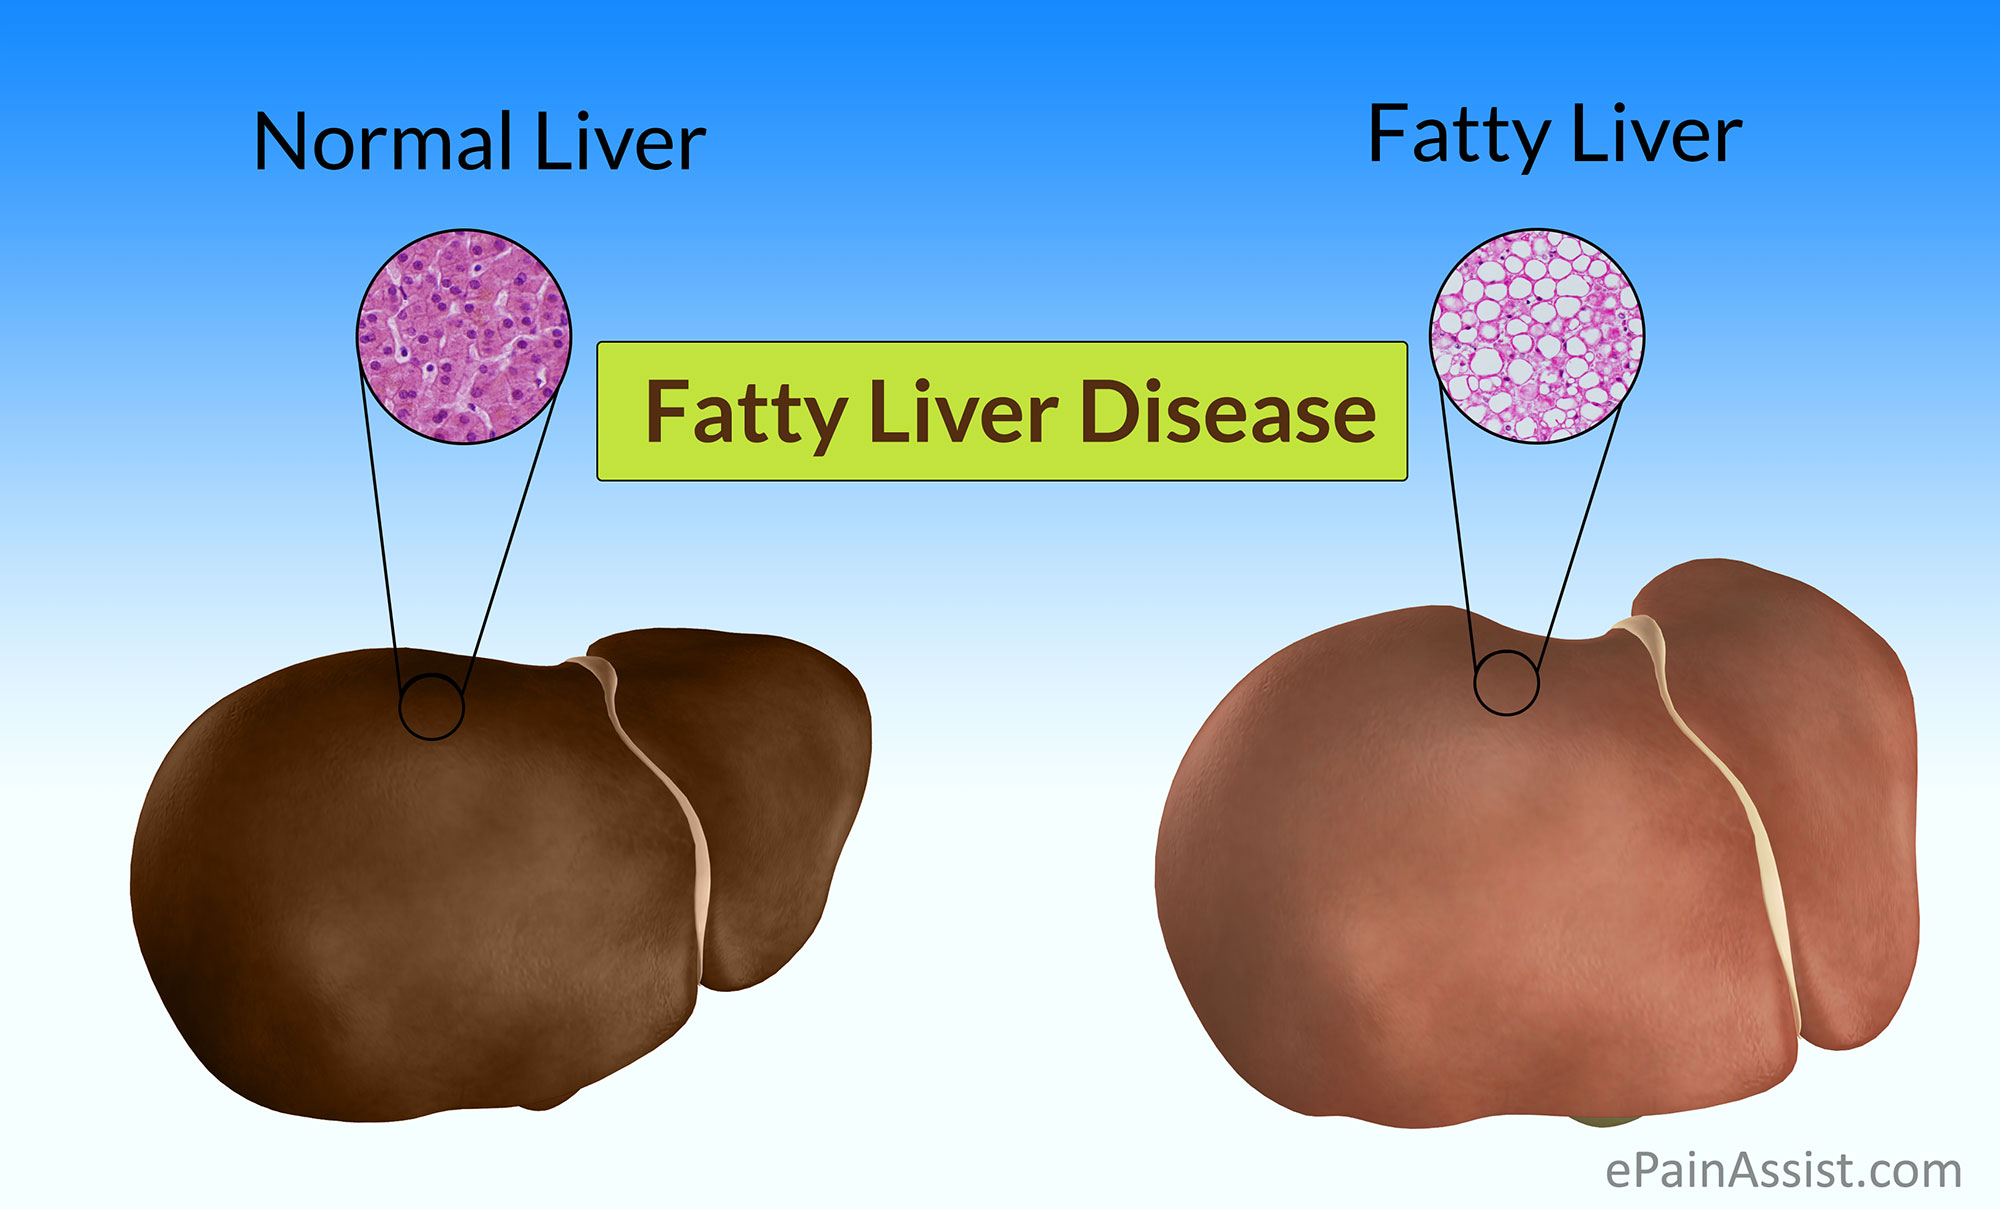 Fatty Liver Disease Fld on eating liver and cholesterol